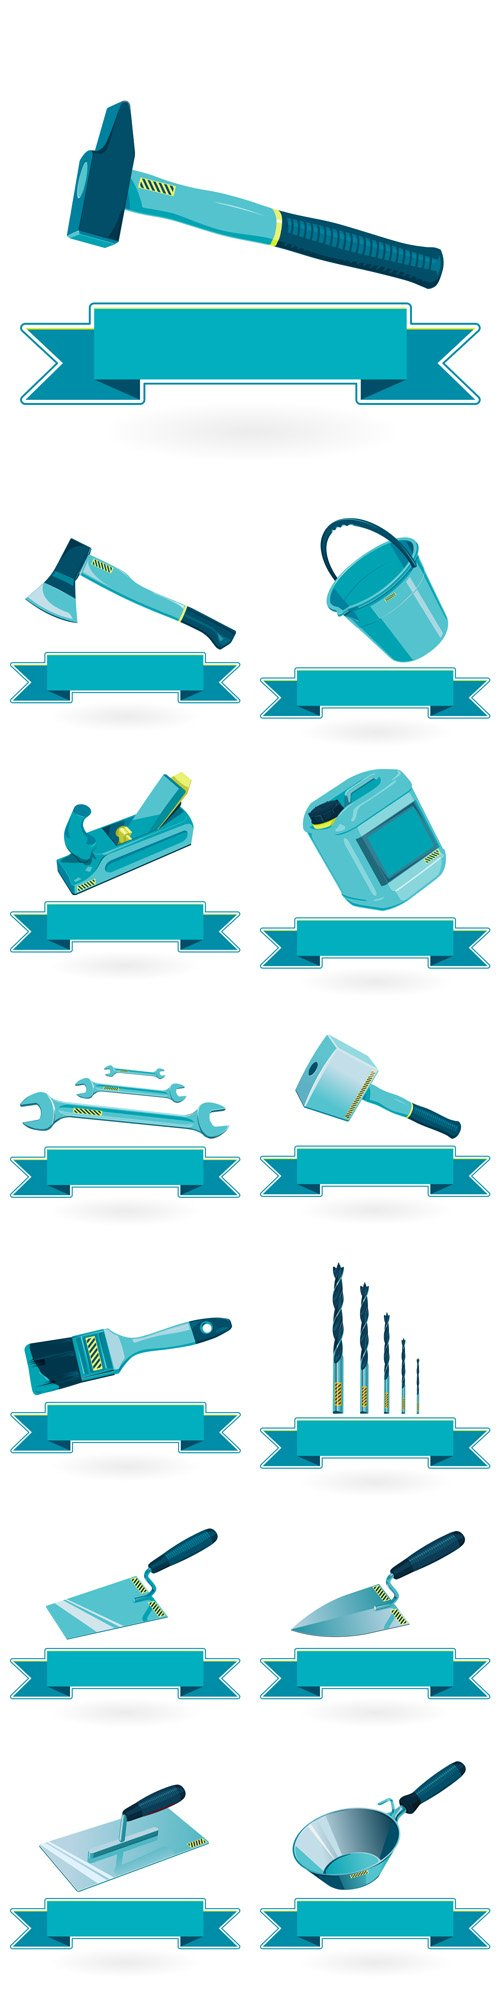 Construction Tools - Vectors